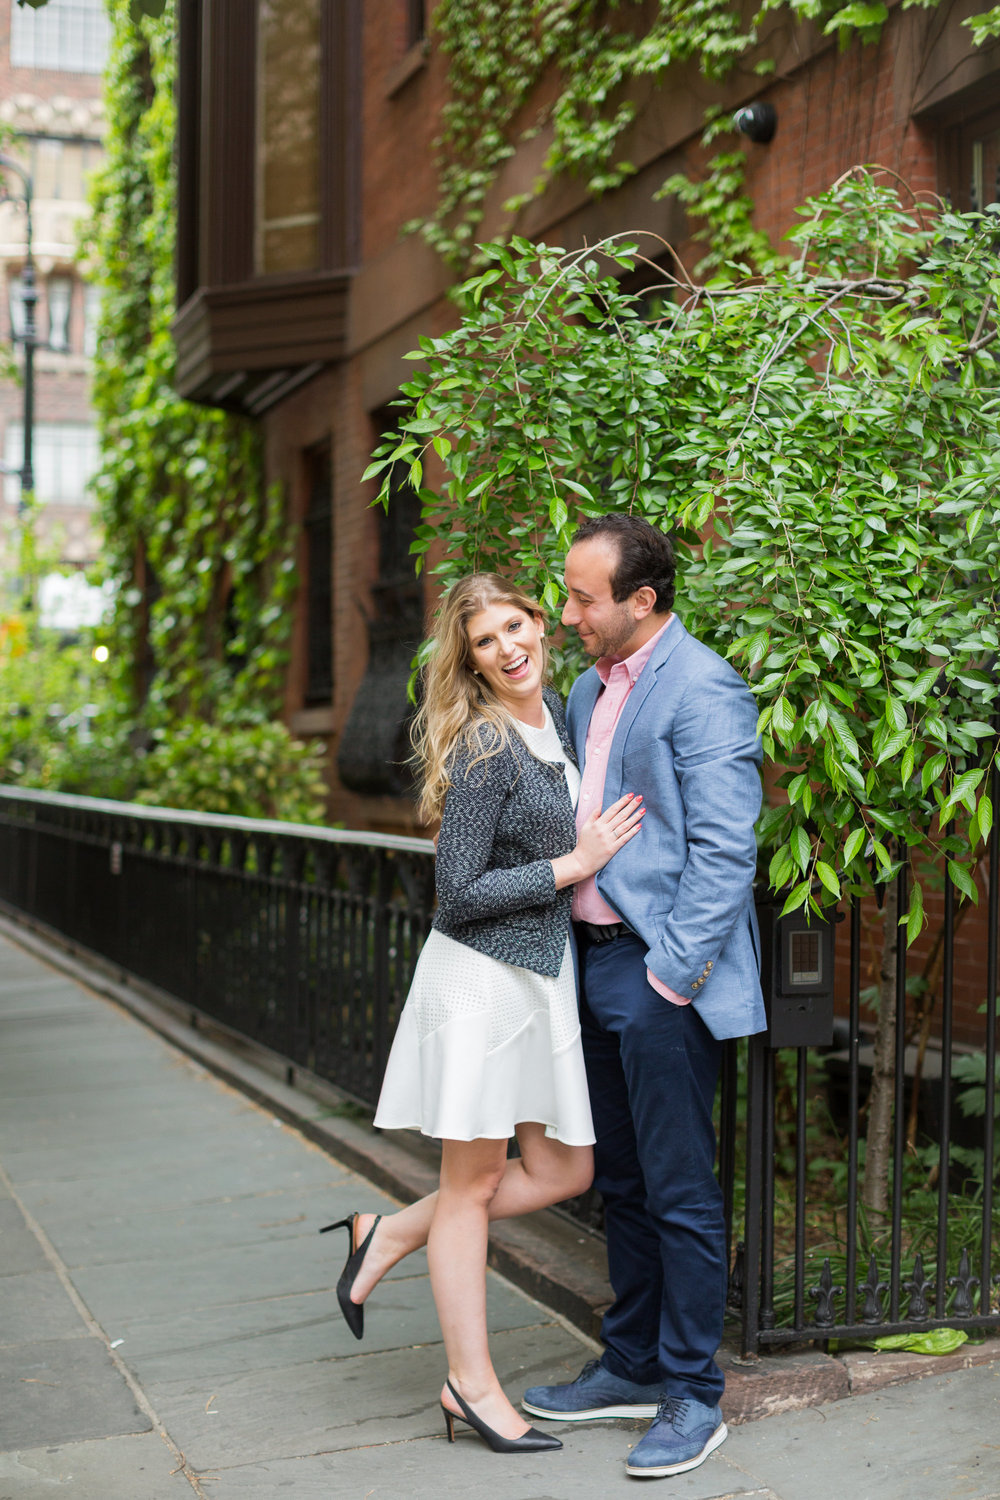 Melissa Kruse Photography - Courtney & JP Gramercy NYC Engagement Photos-134.jpg